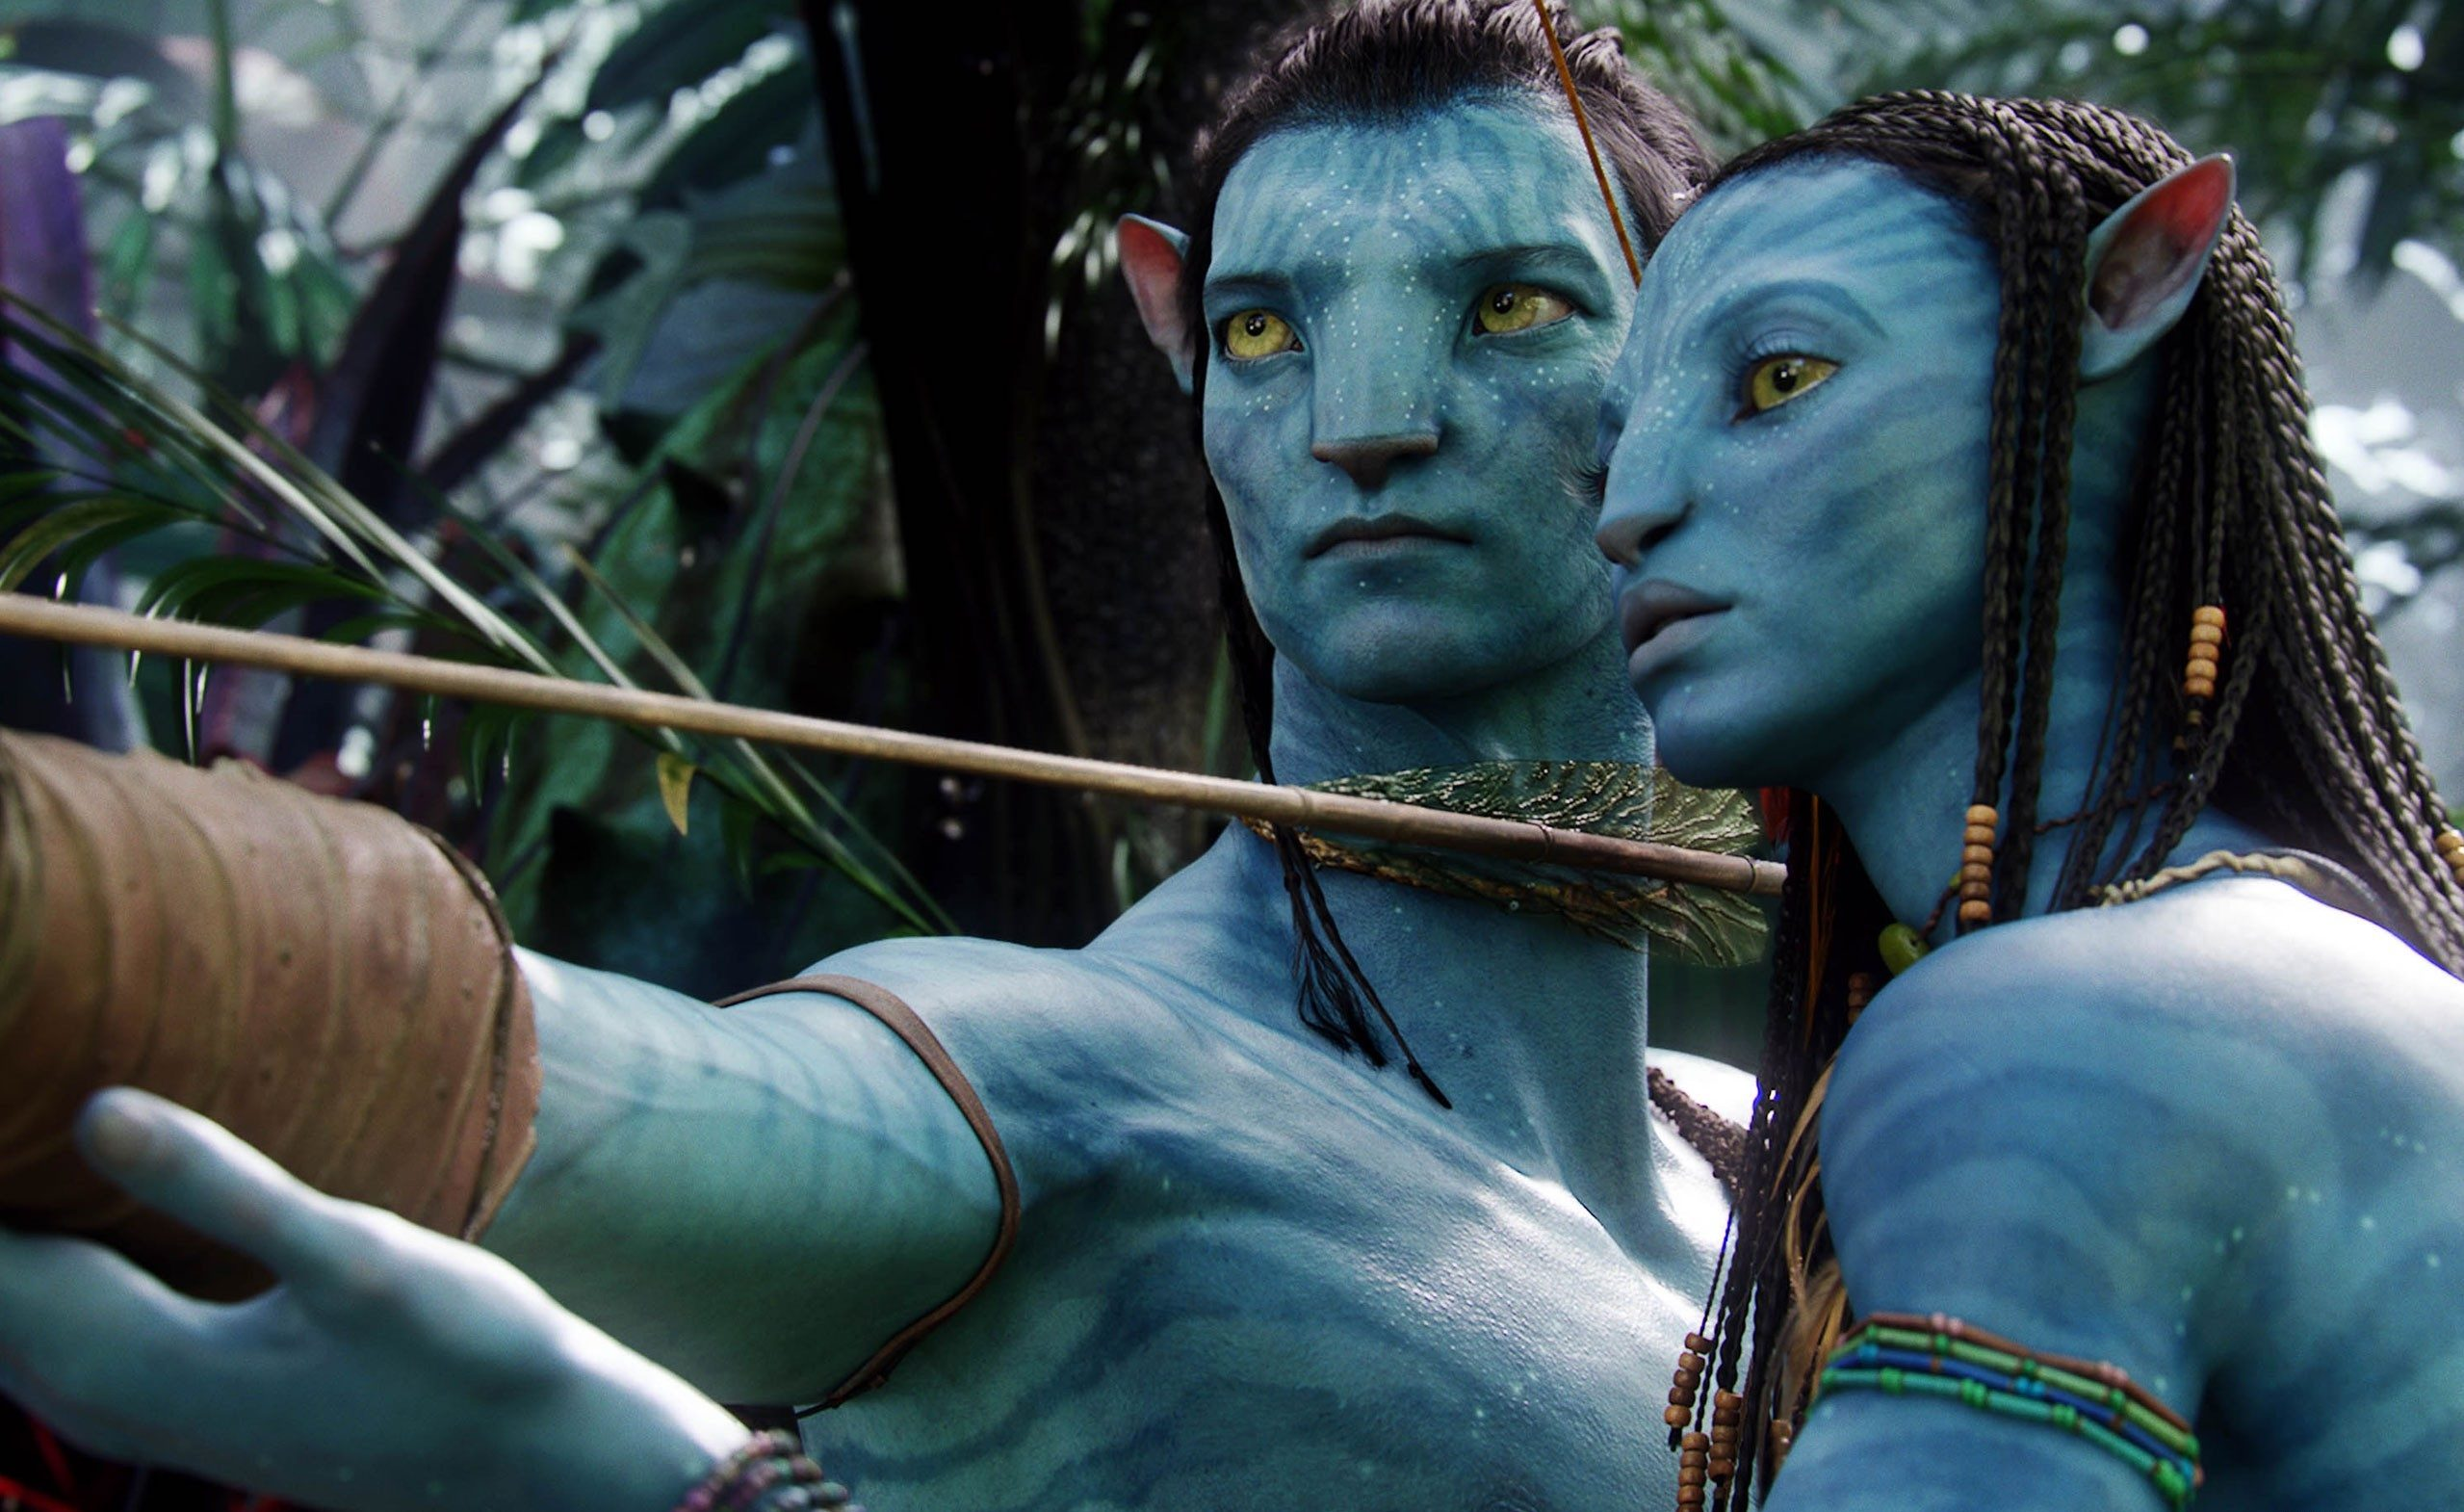 New Behind the Scenes Photo Hints at Ocean Adventures in 'Avatar 2'